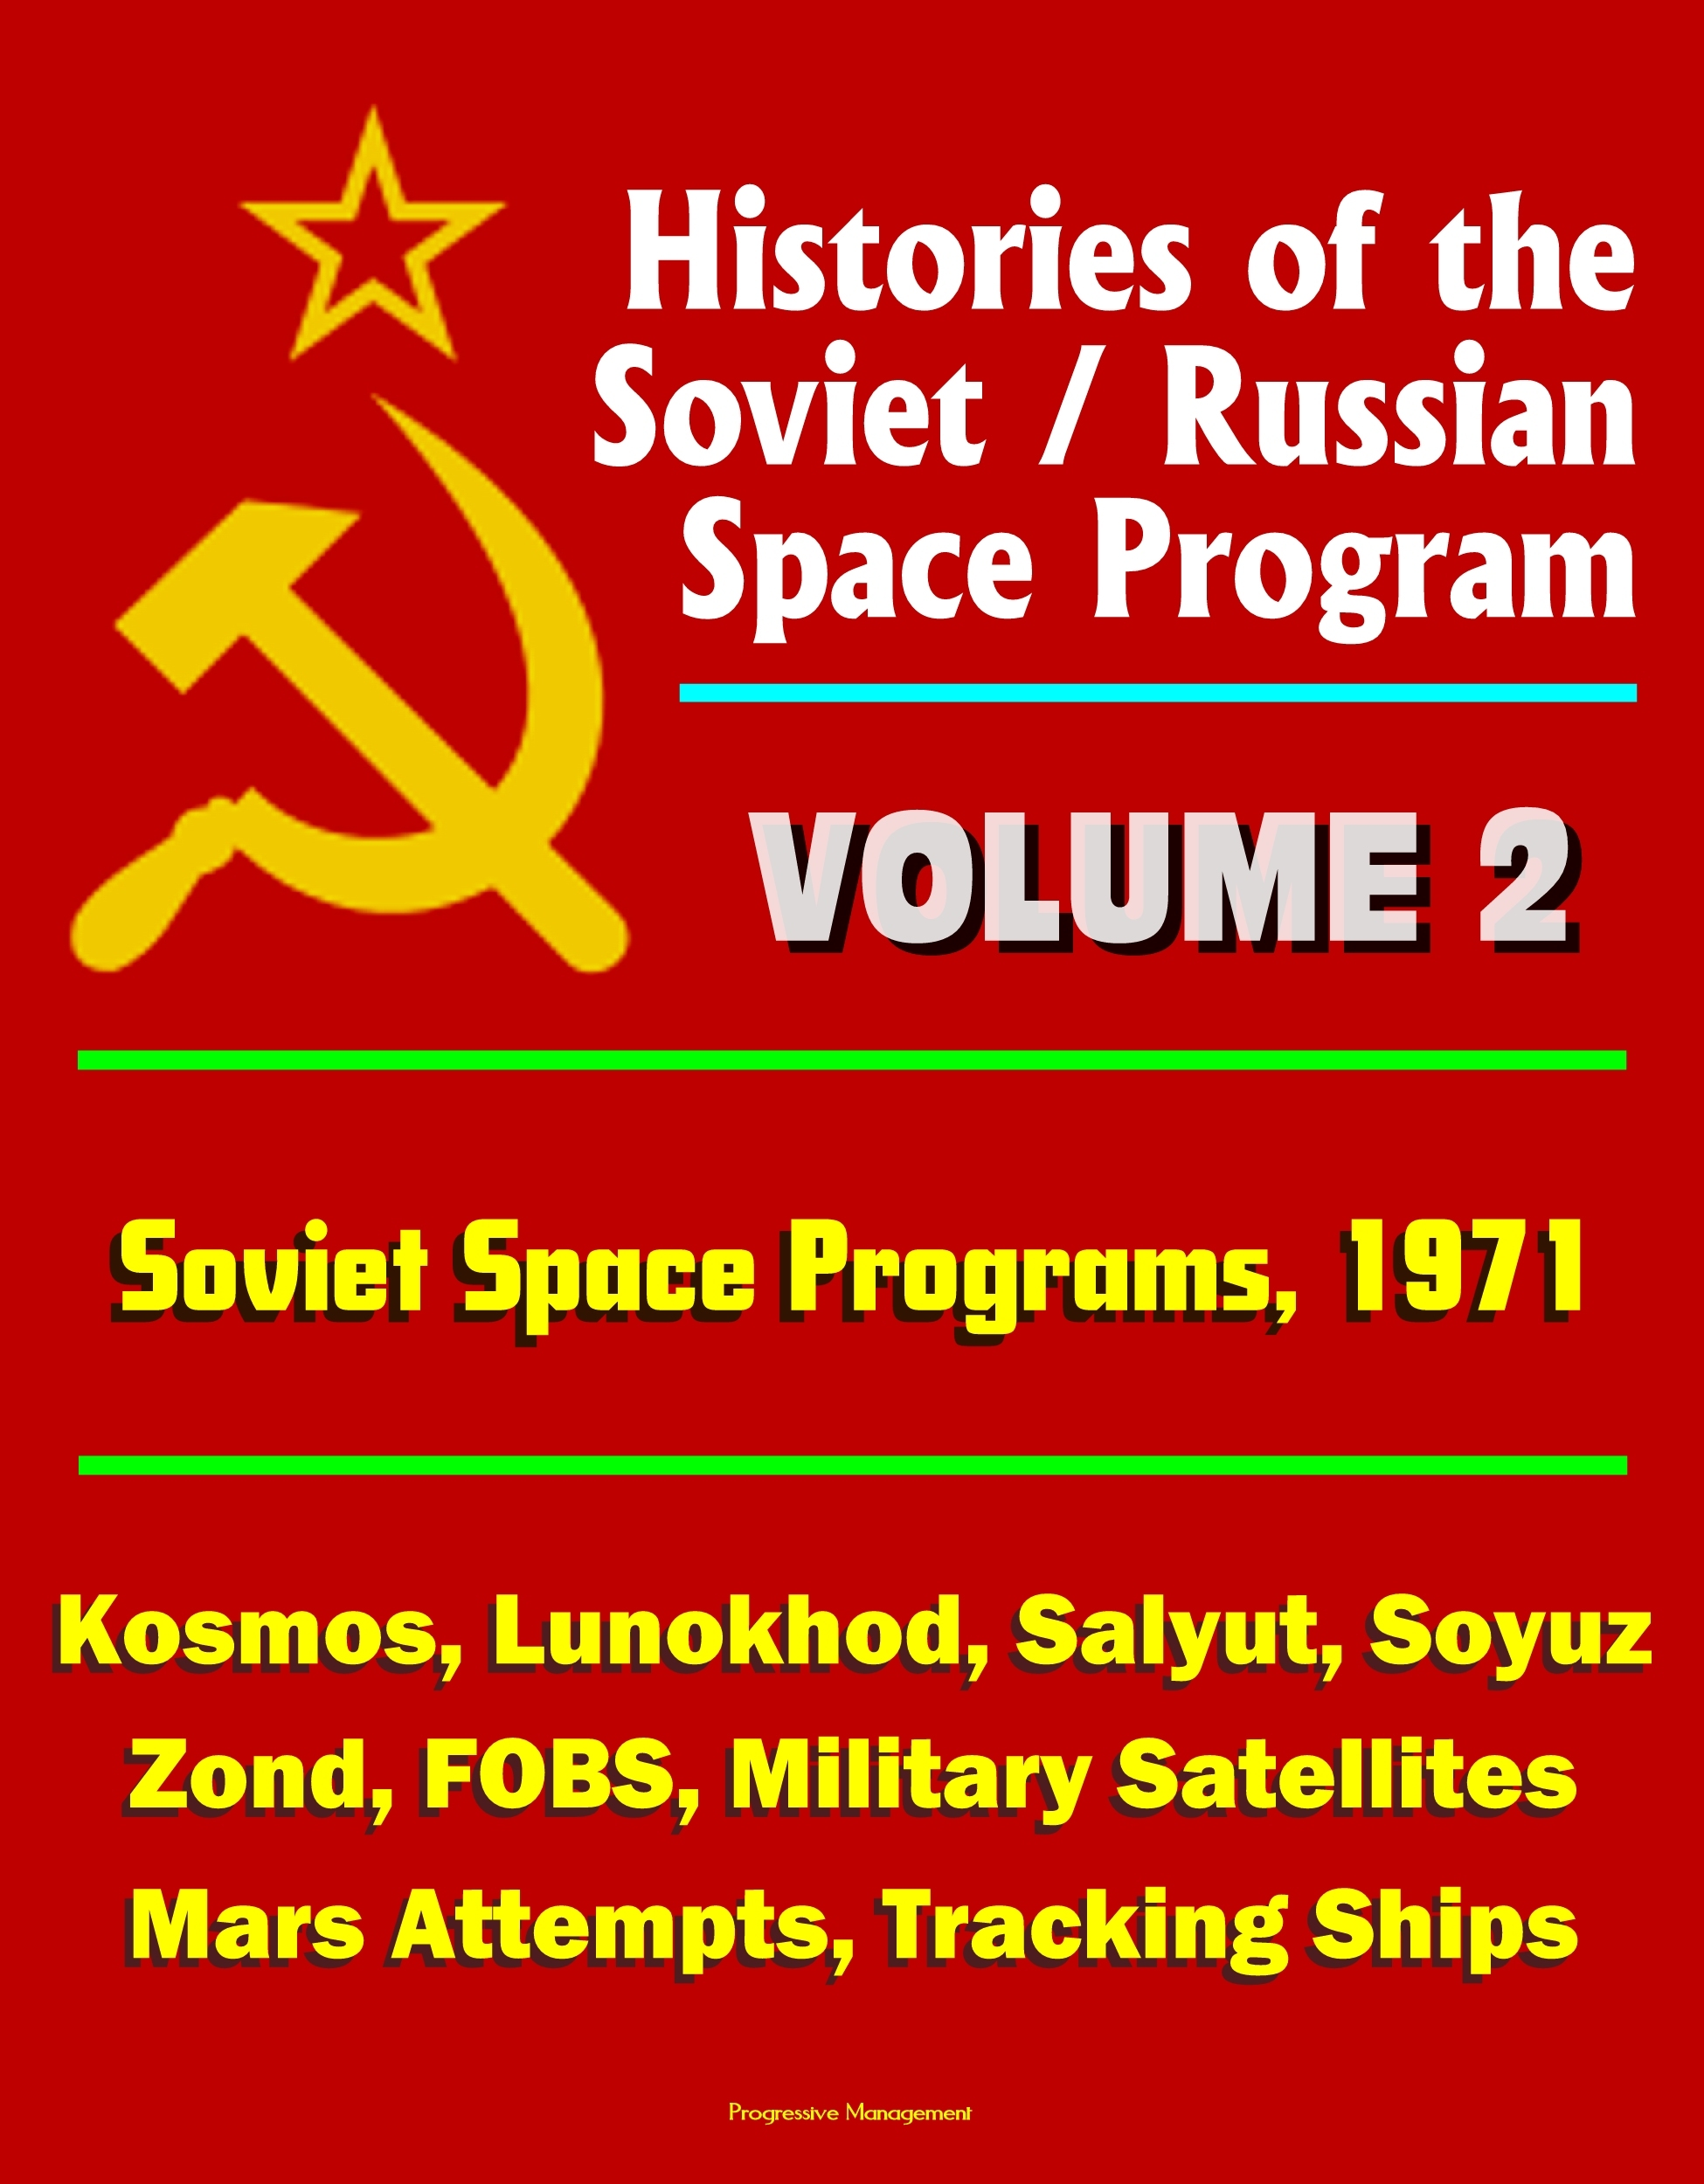 Histories of the Soviet / Russian Space Program: Volume 2: Soviet Space Programs 1971 - Kosmos, Lunokhod, Salyut, Soyuz, Zond, FOBS, Military Satellites, Mars Attempts, Tracking Ships